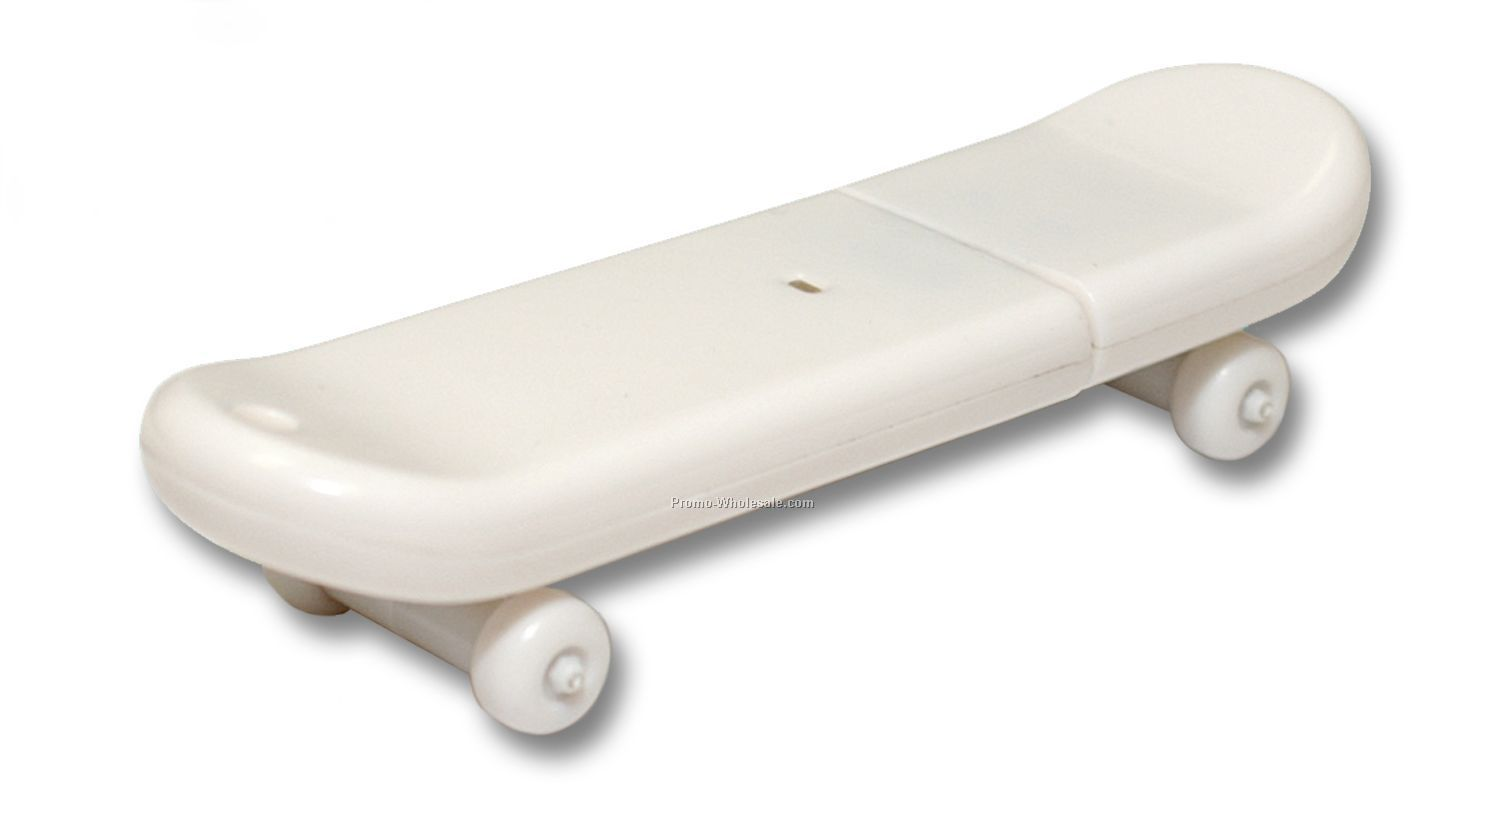 4gb Usb2.0 Skateboard Flash Drive - Rubber Coated White